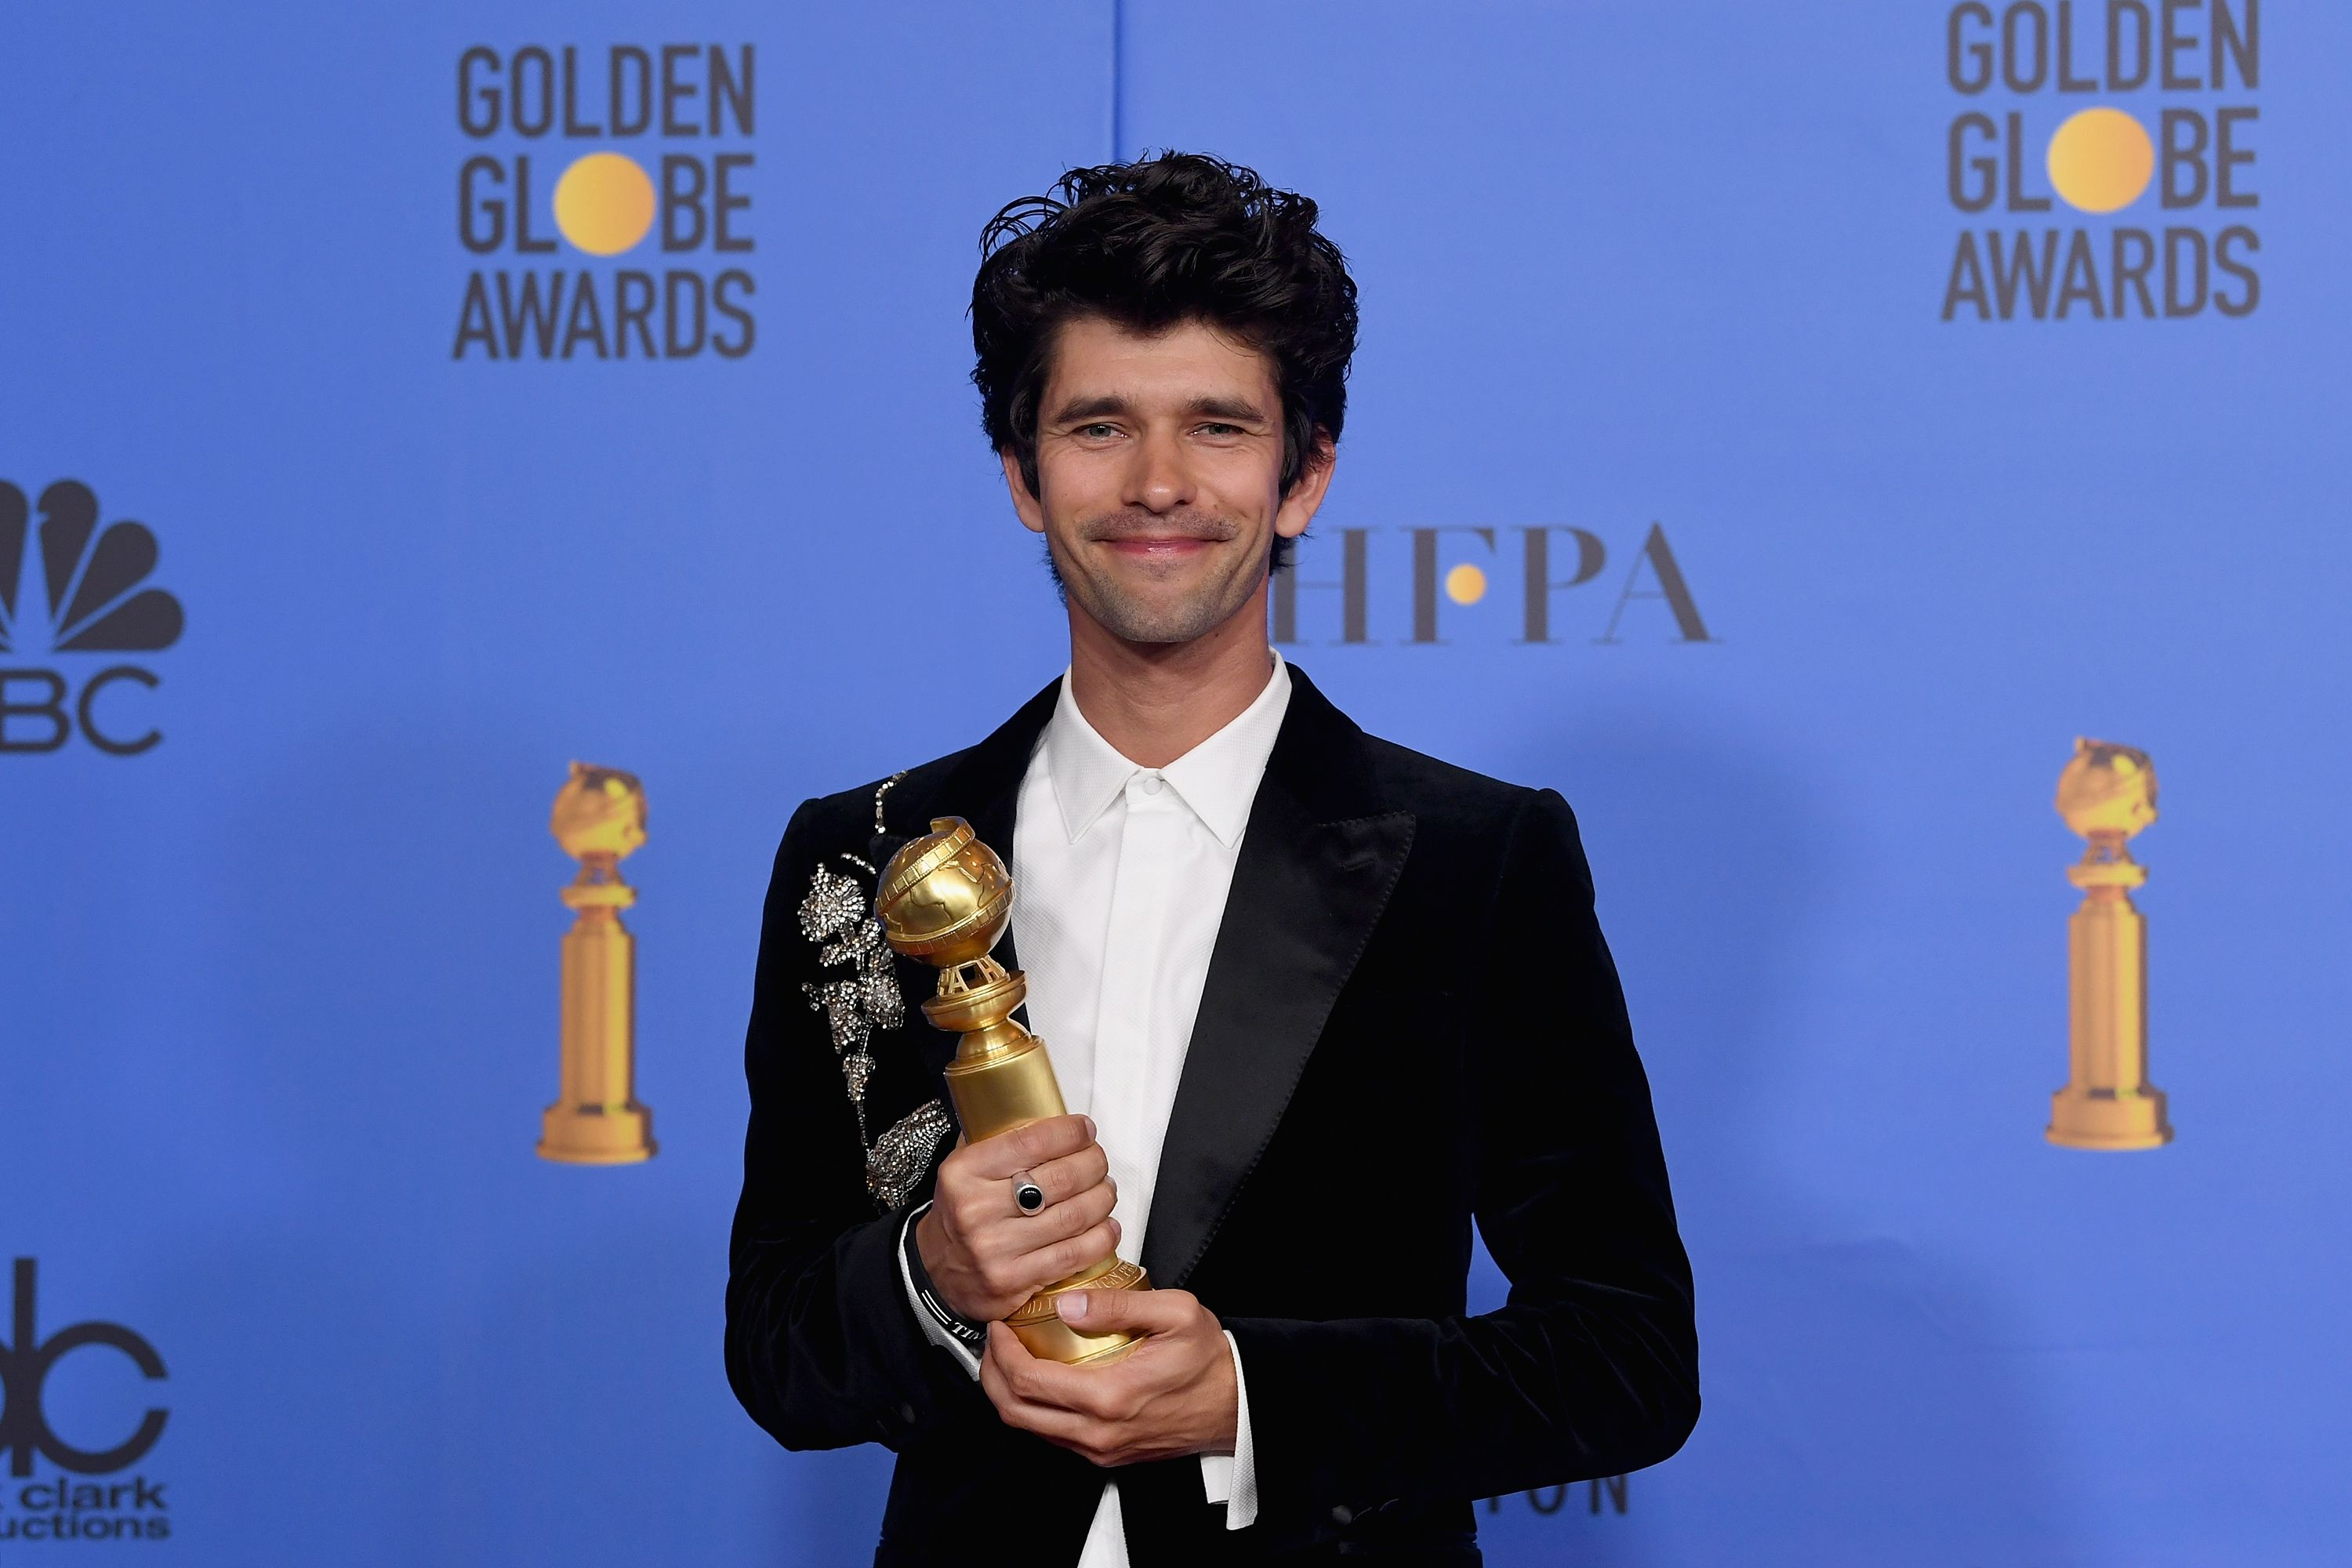 The Complete List of Winners of the 2019 Golden Globes